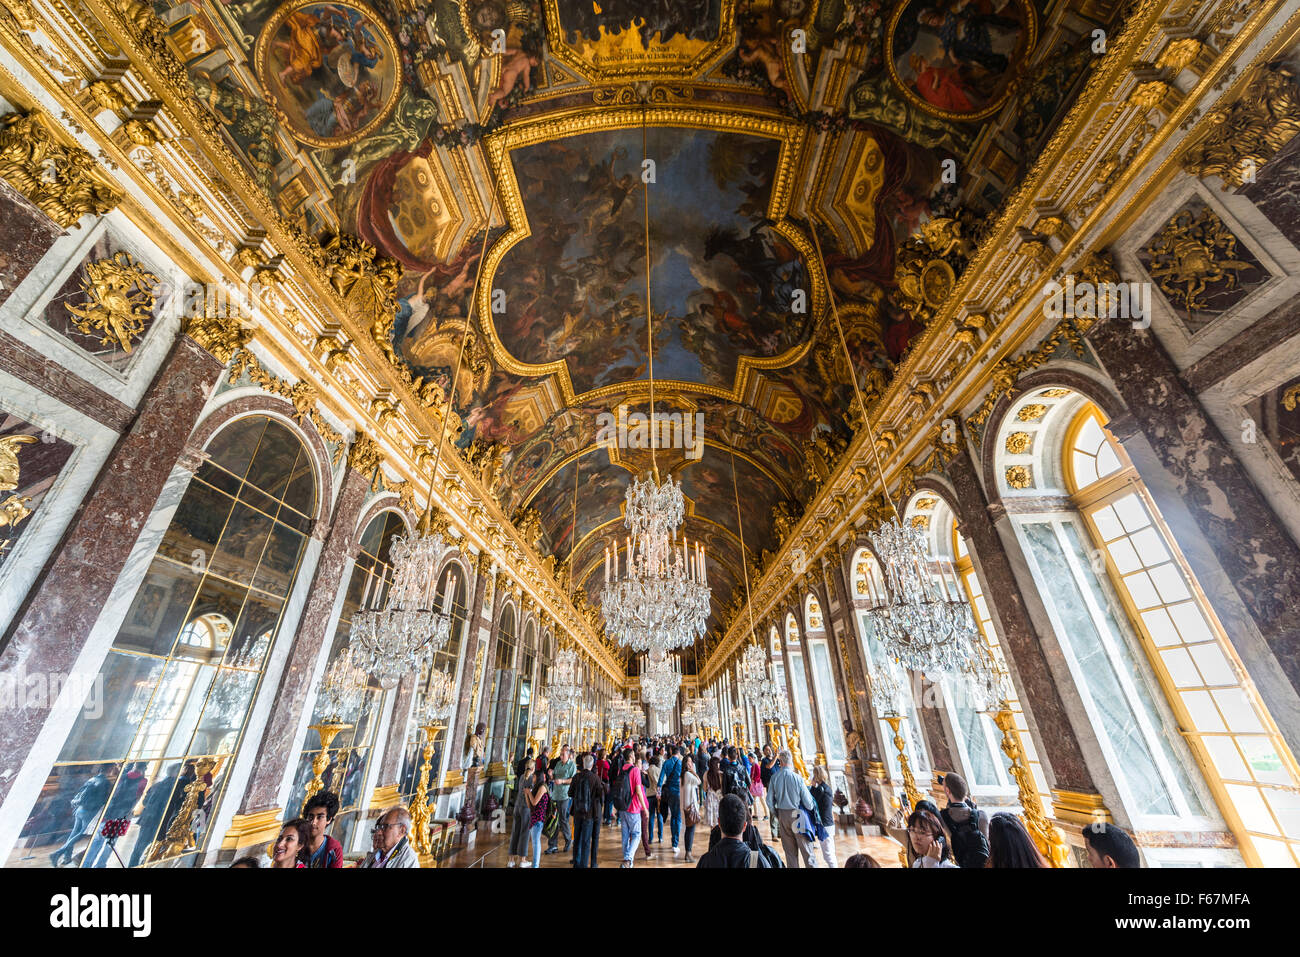 Hall of Mirrors, Versailles, UNESCO World Heritage Site, Yvelines, Region Ile-de-France, France - Stock Image